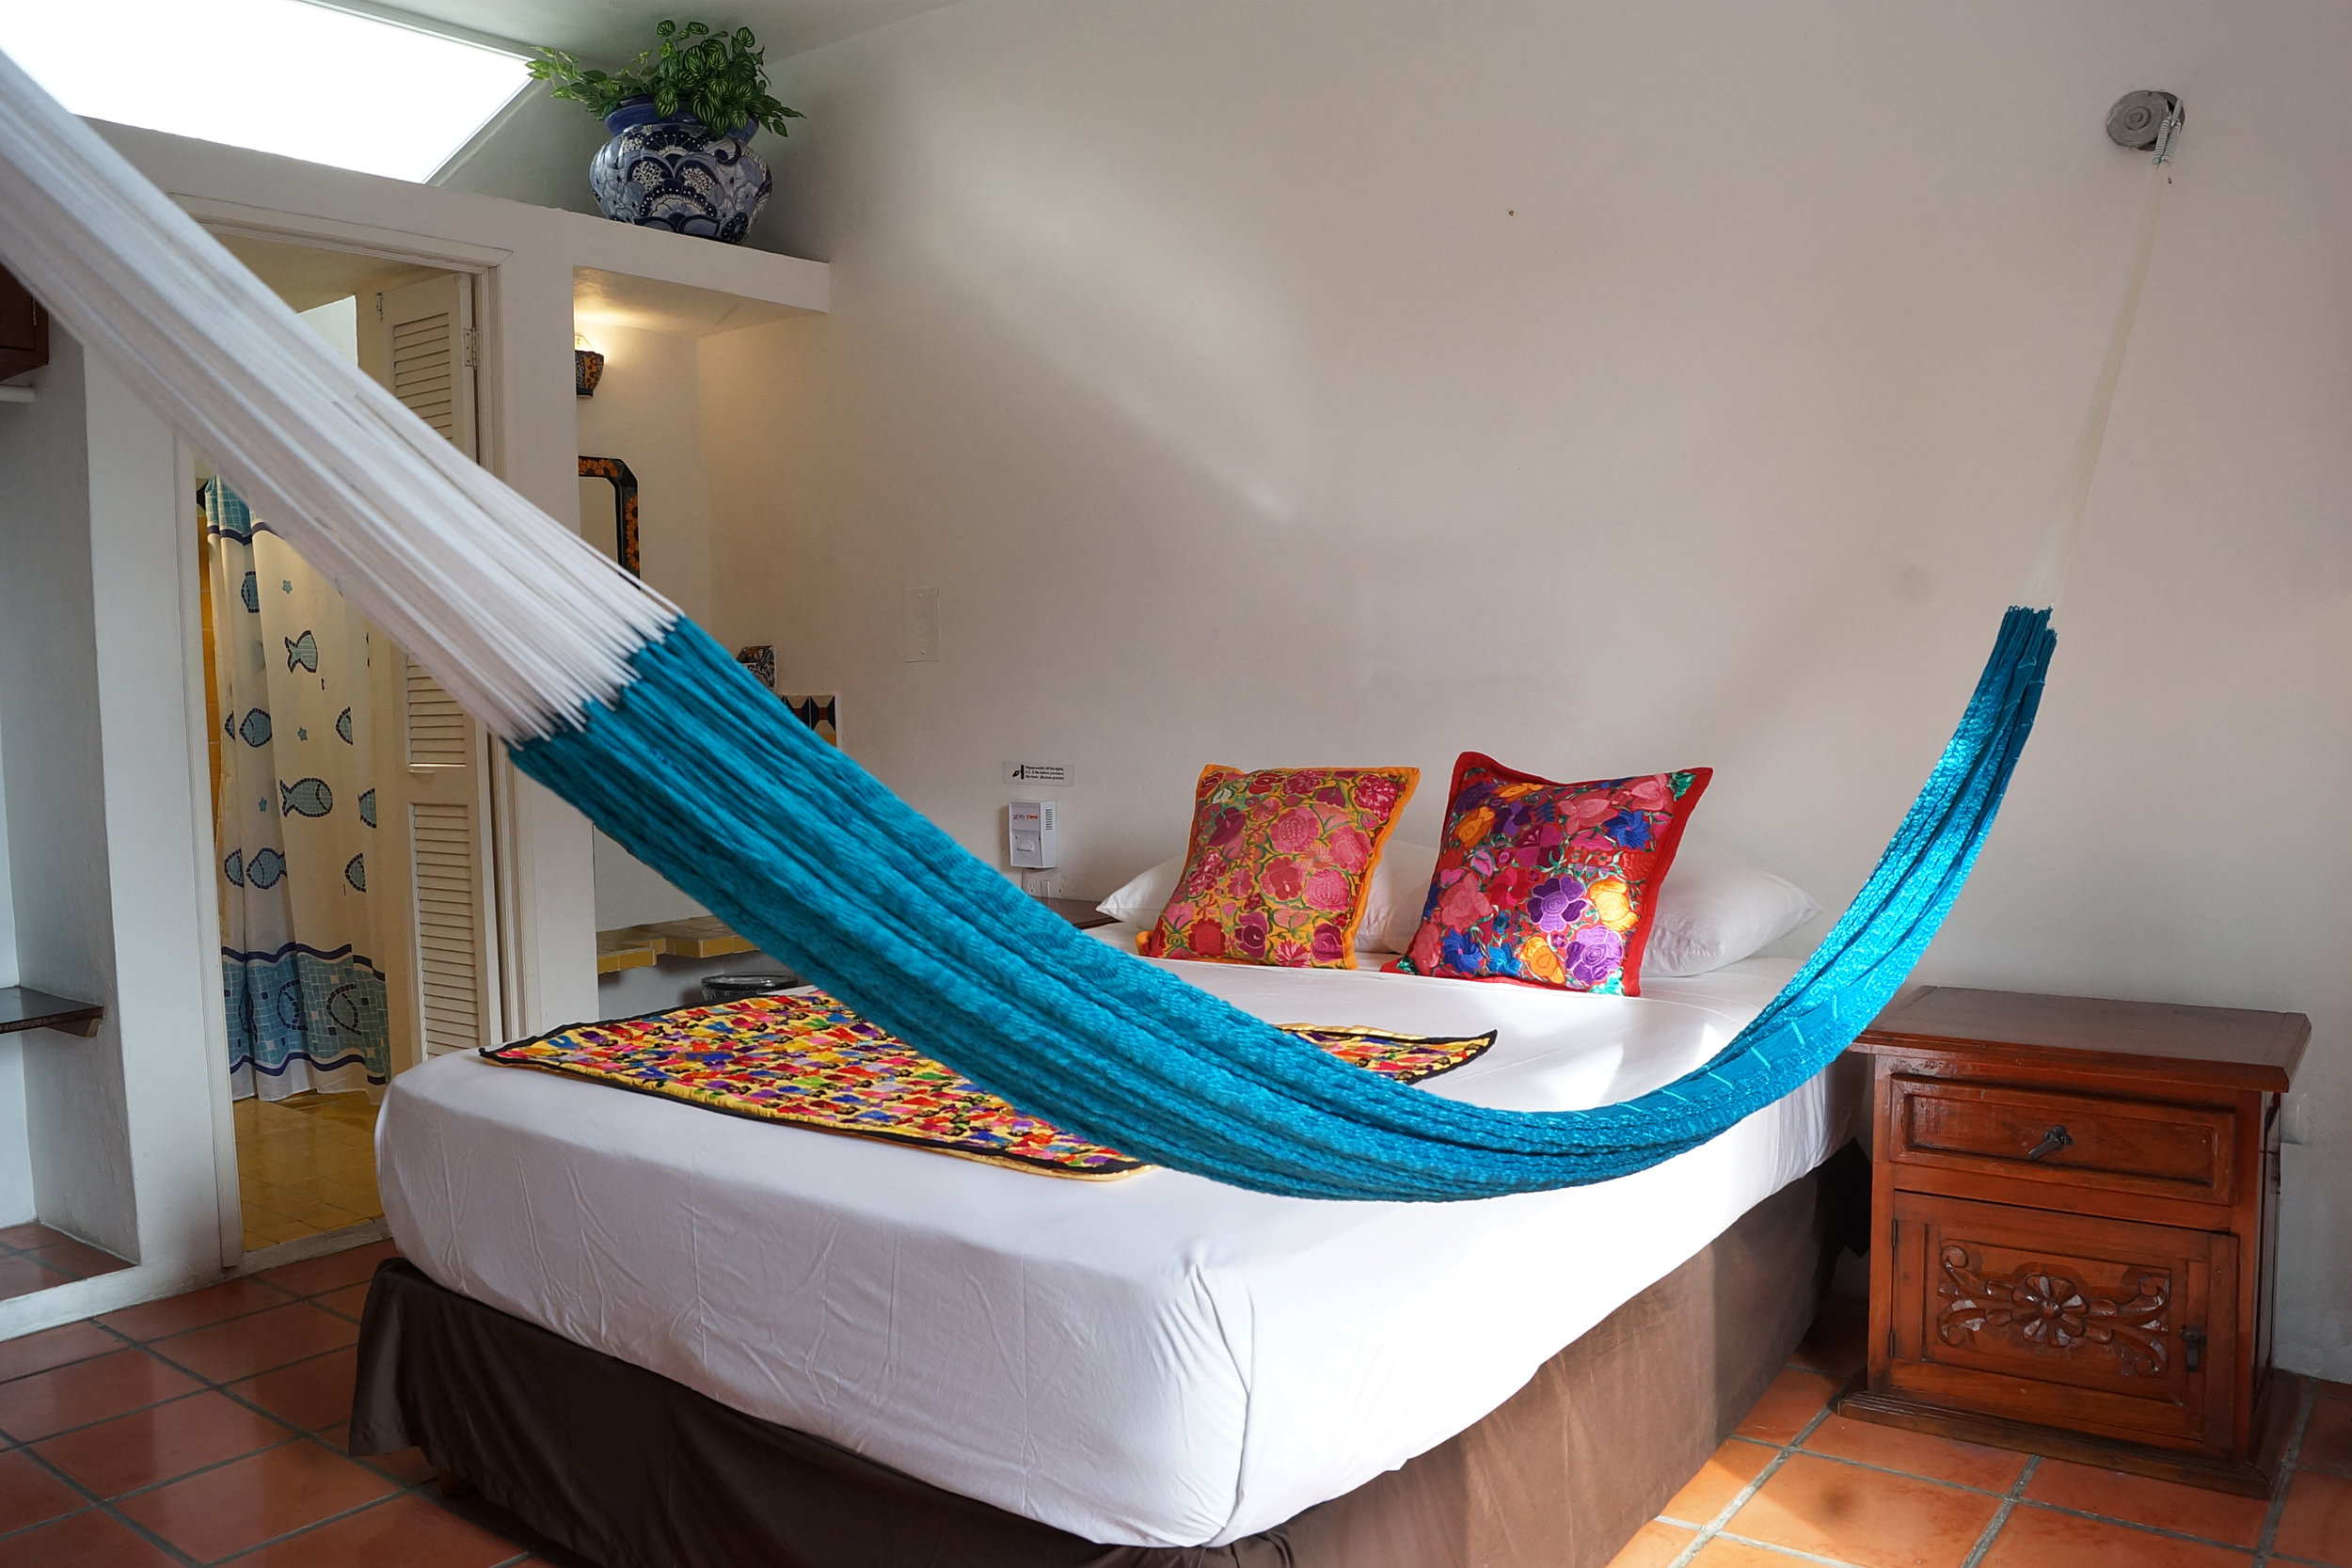 TAMARINDO BED AND BREAKFAST - This highly ranked B&B is set among tranquil, tropical gardens and palapa roofs, offering privacy and relaxed surroundings. Furnished with vibrant local decor alongside luxury accommodations, guests have called Tamarindo their home in Cozumel for over 20 years!Tamarindo B&B is only 4 blocks from the oceanfront in Zona Centro, near the ferry building and main square! The Cozumel International Airport is just minutes away by taxi. A full renovation of Tamarindo was completed in 2017 - Come experience the 5-star difference.